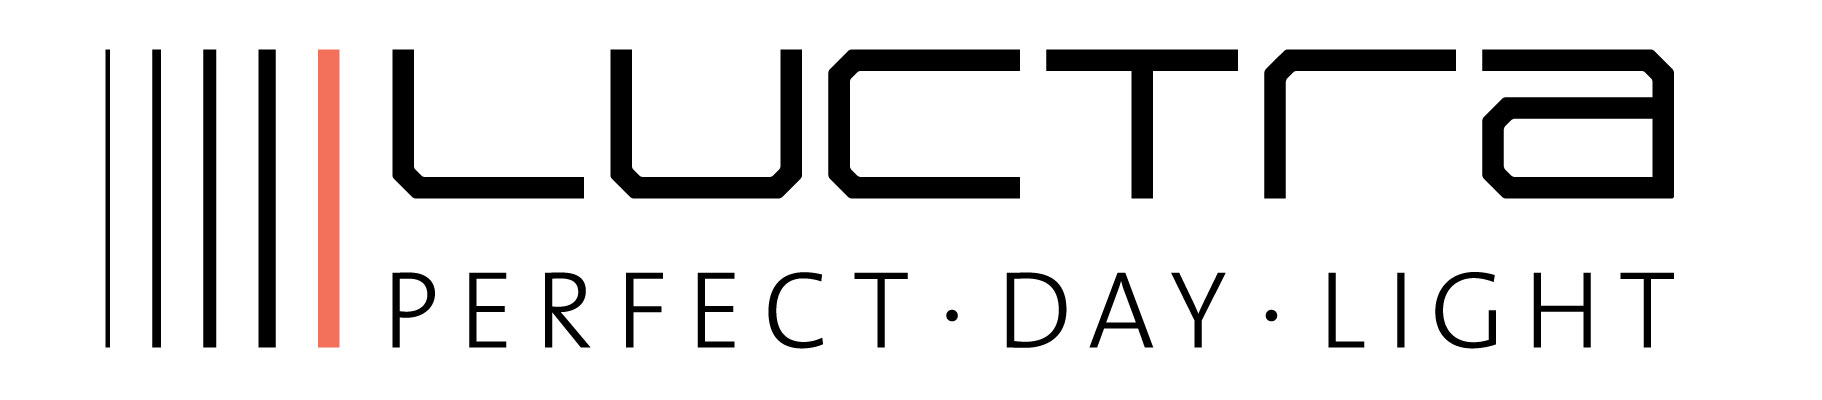 Luctra-Logo.jpg